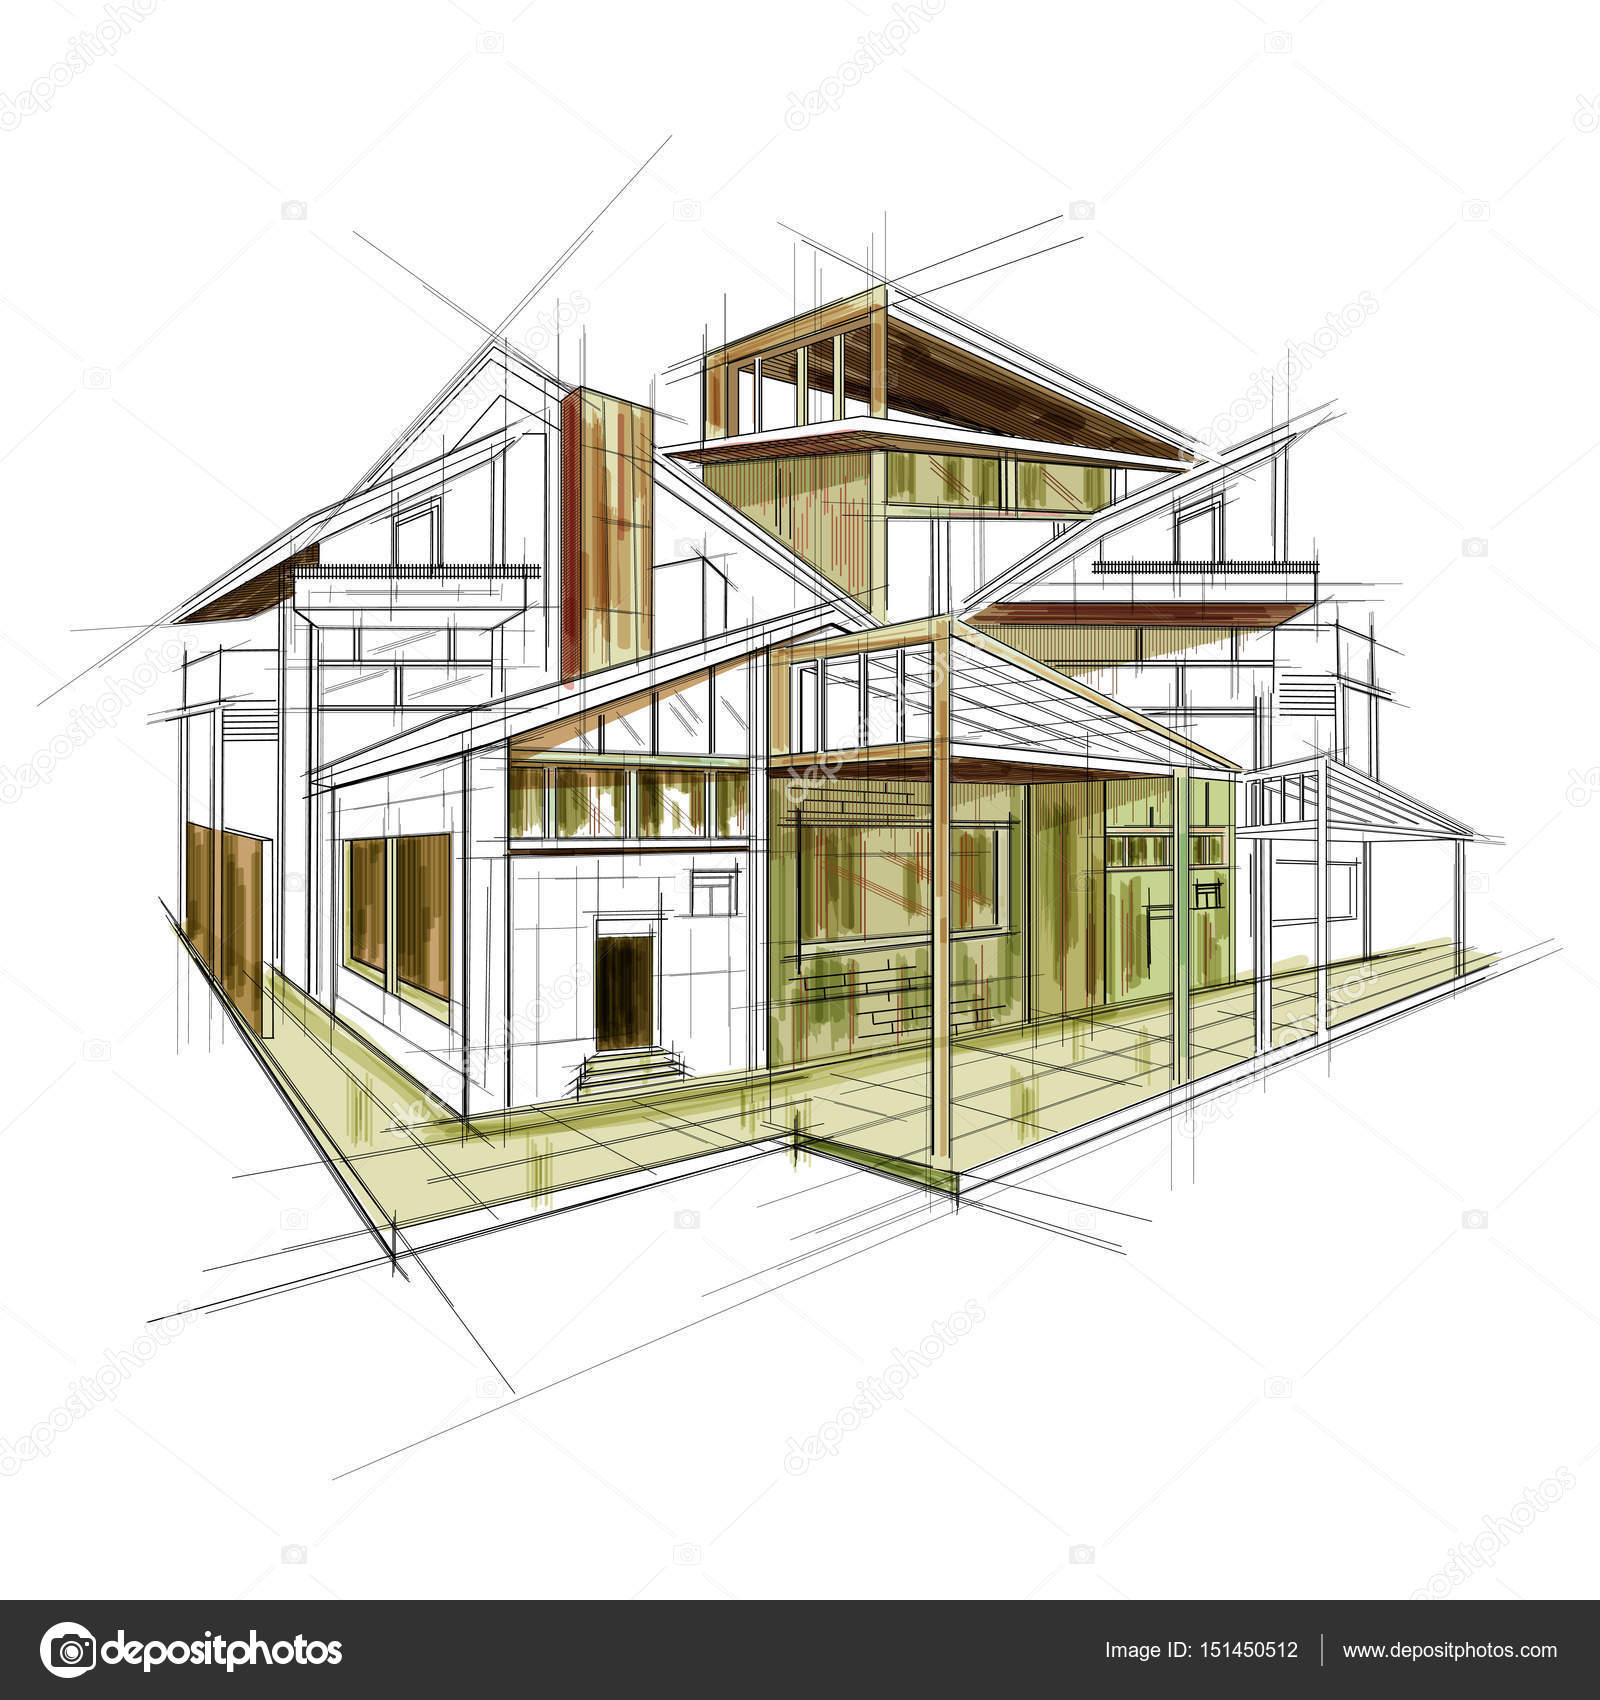 Sketch of exterior building draft blueprint design stock vector sketch of exterior building draft blueprint design stock vector malvernweather Choice Image